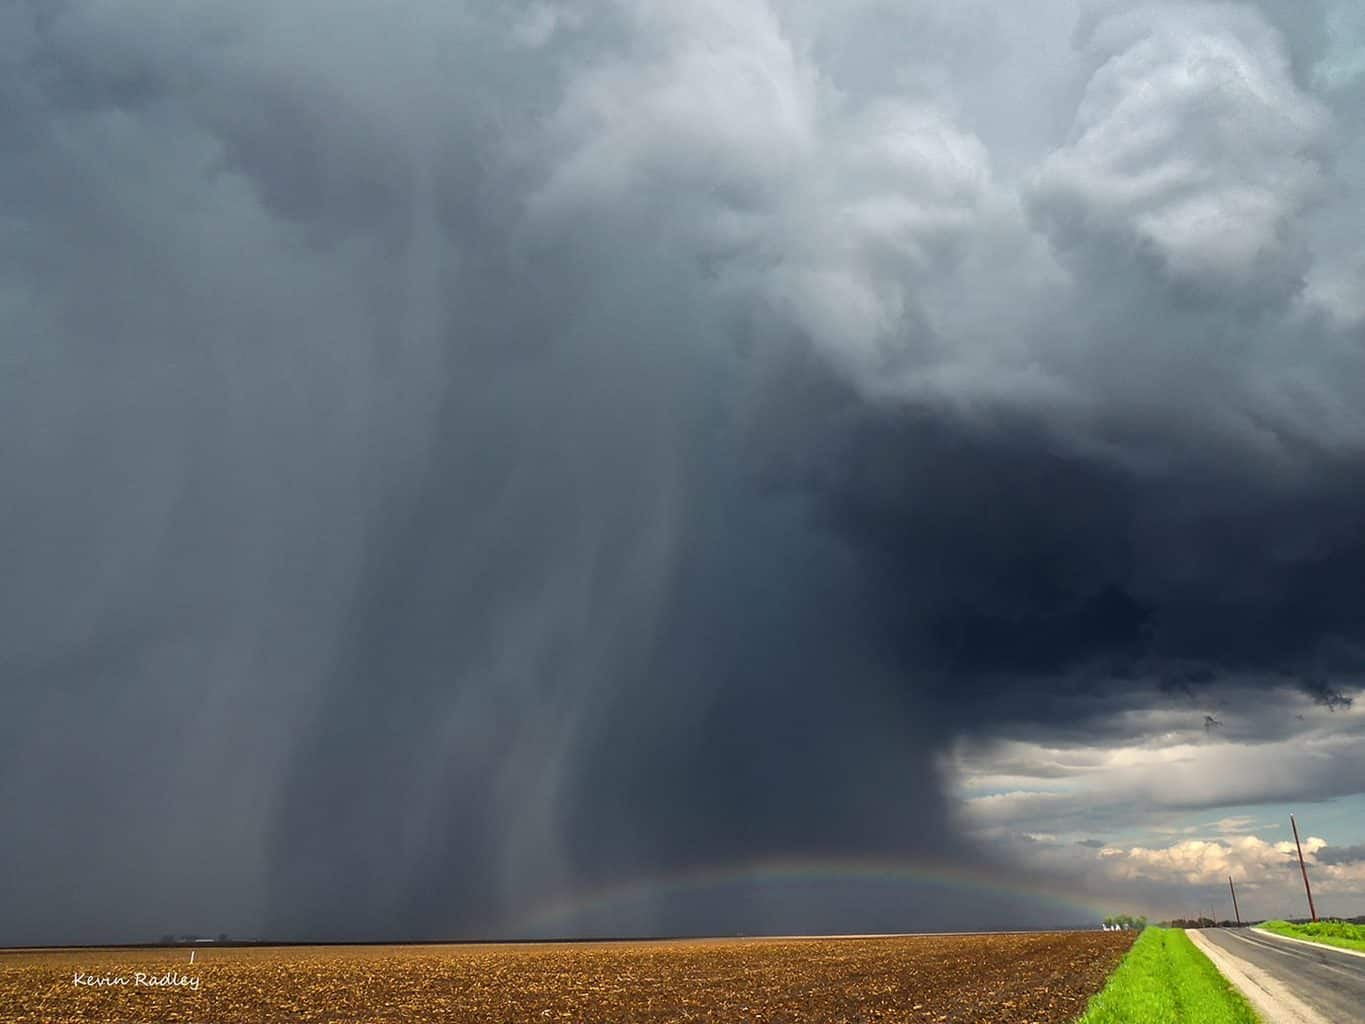 Got this pea size hail producer near Pawnee, IL around 3:30 pm this afternoon 4 21 16. First time I have seen a rainbow like that.